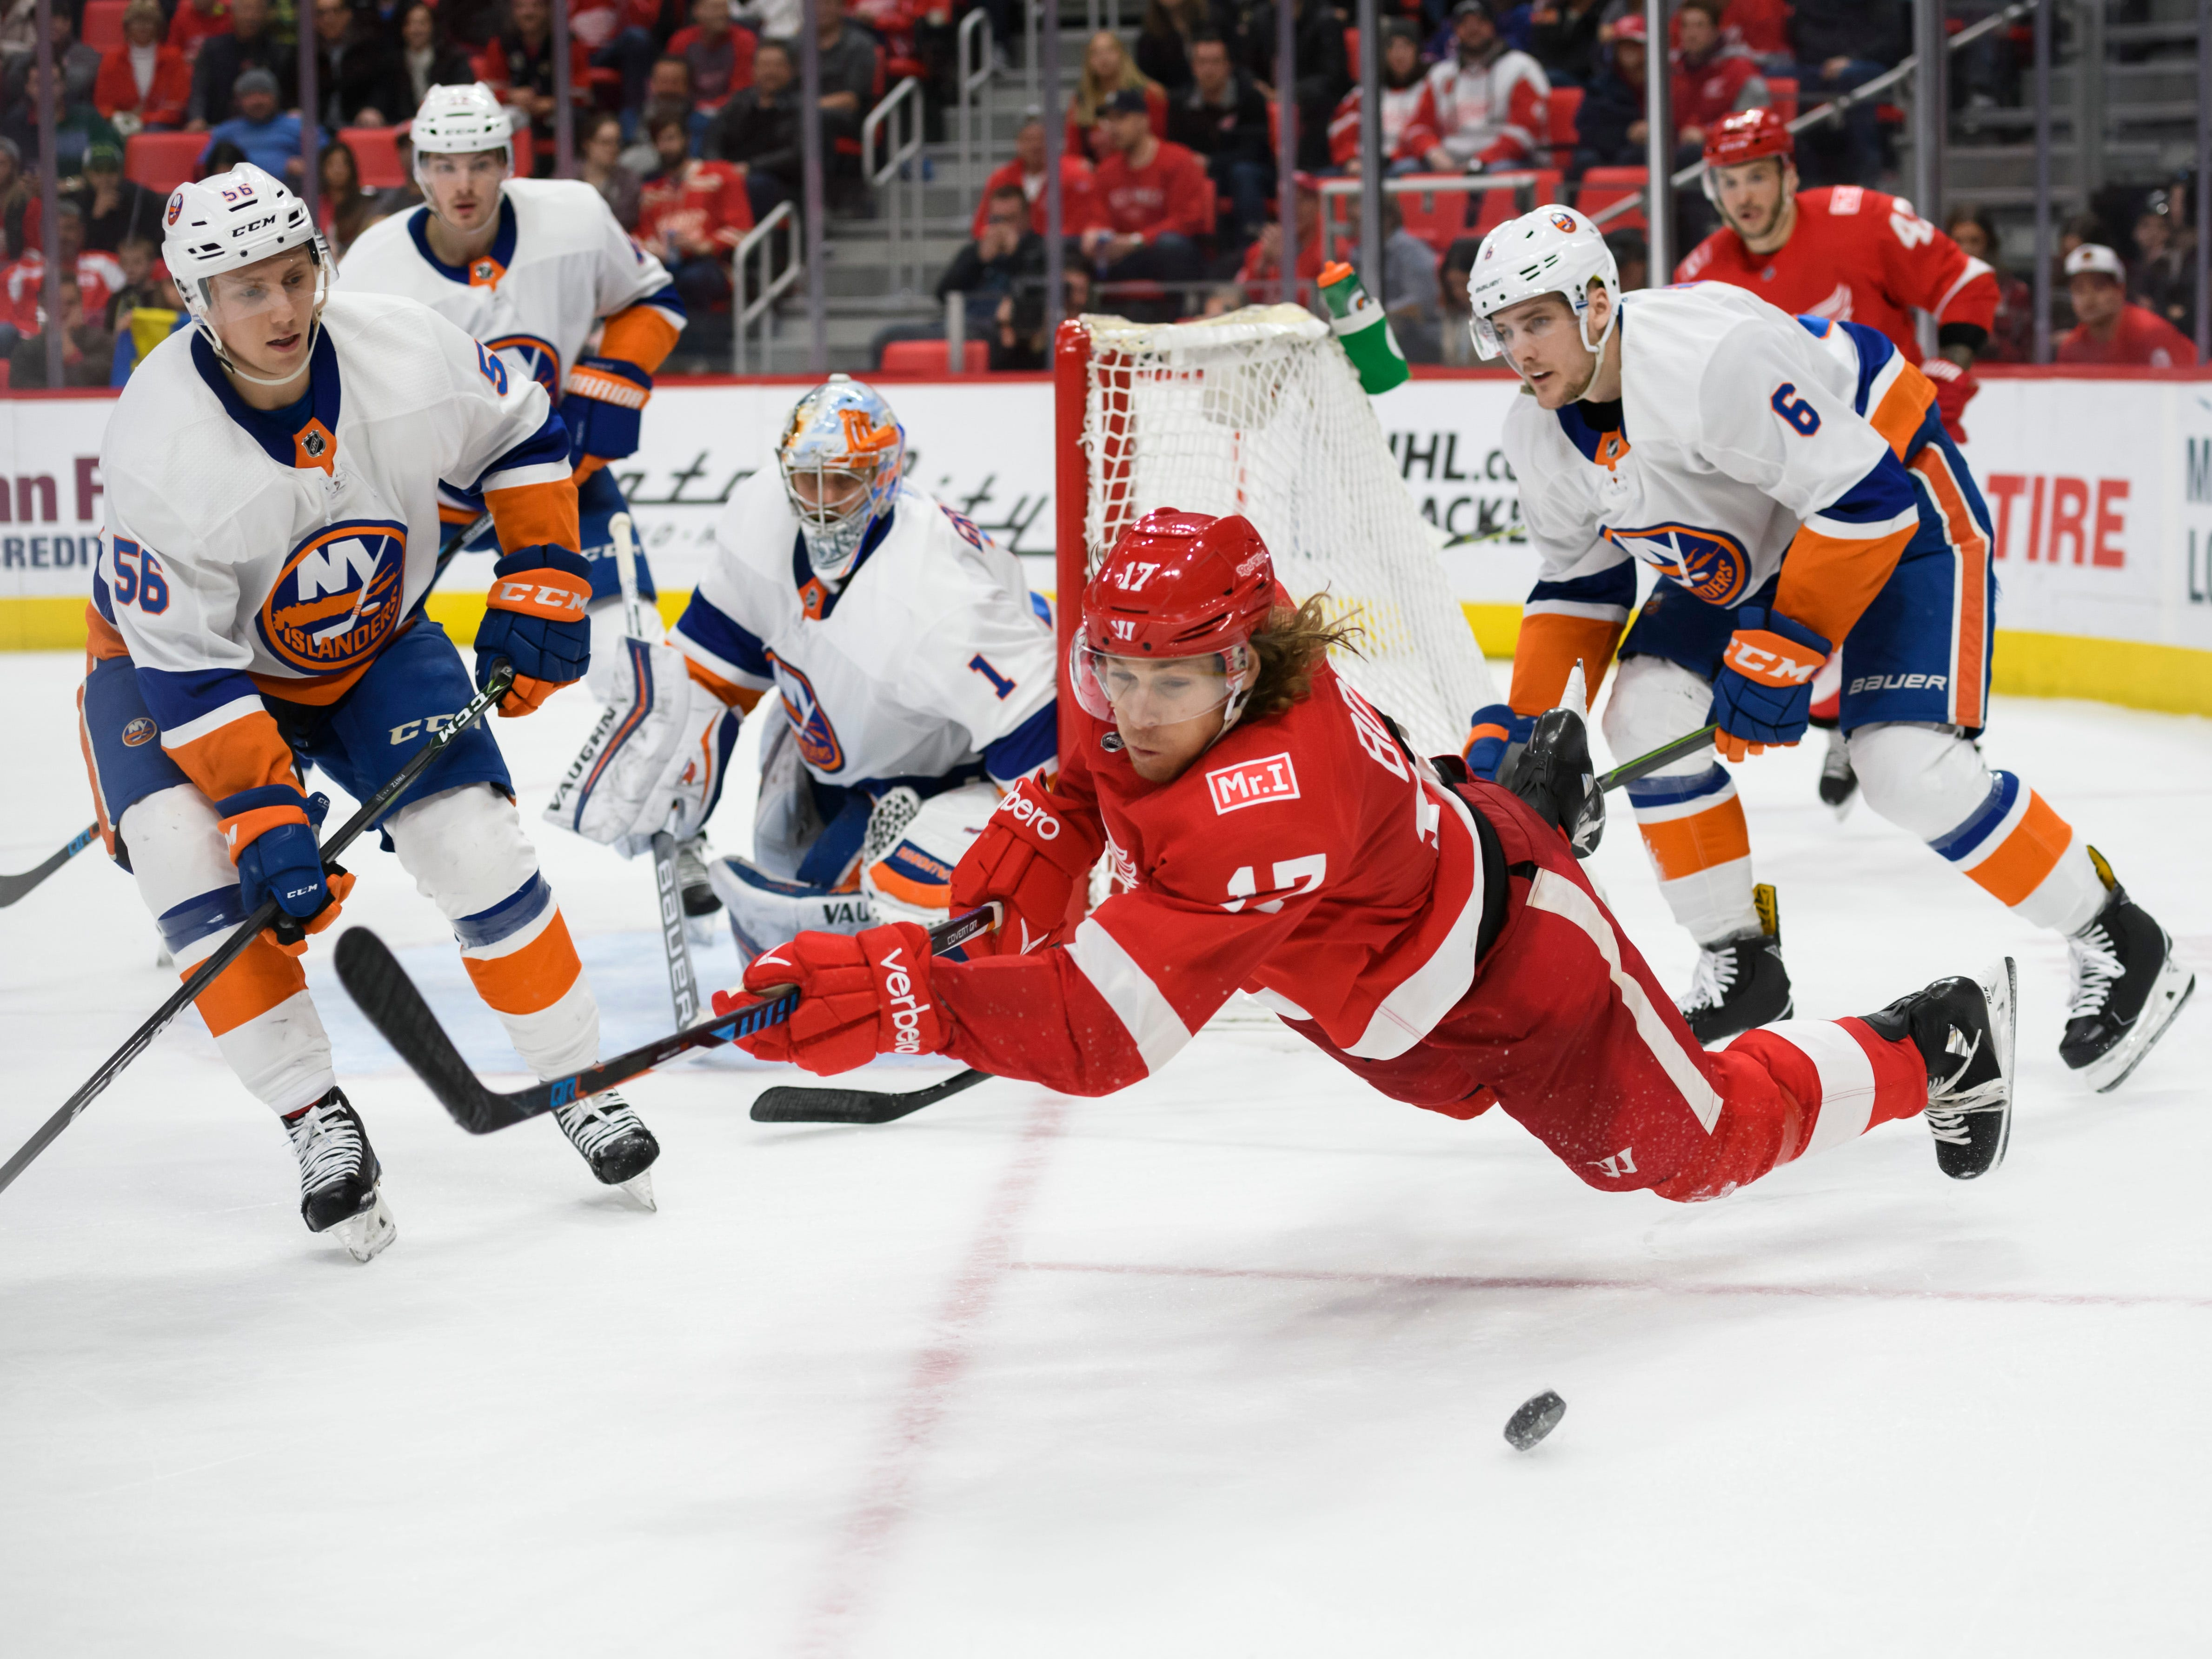 Detroit Red Wings left wing David Booth goes airborne after being tripped up while trying to control the puck against the New York Islanders, at Little Caesars Arena, in Detroit, April 7, 2018. The Wings muddled through a losing 2017-18 season, their first in the new LCA arena.